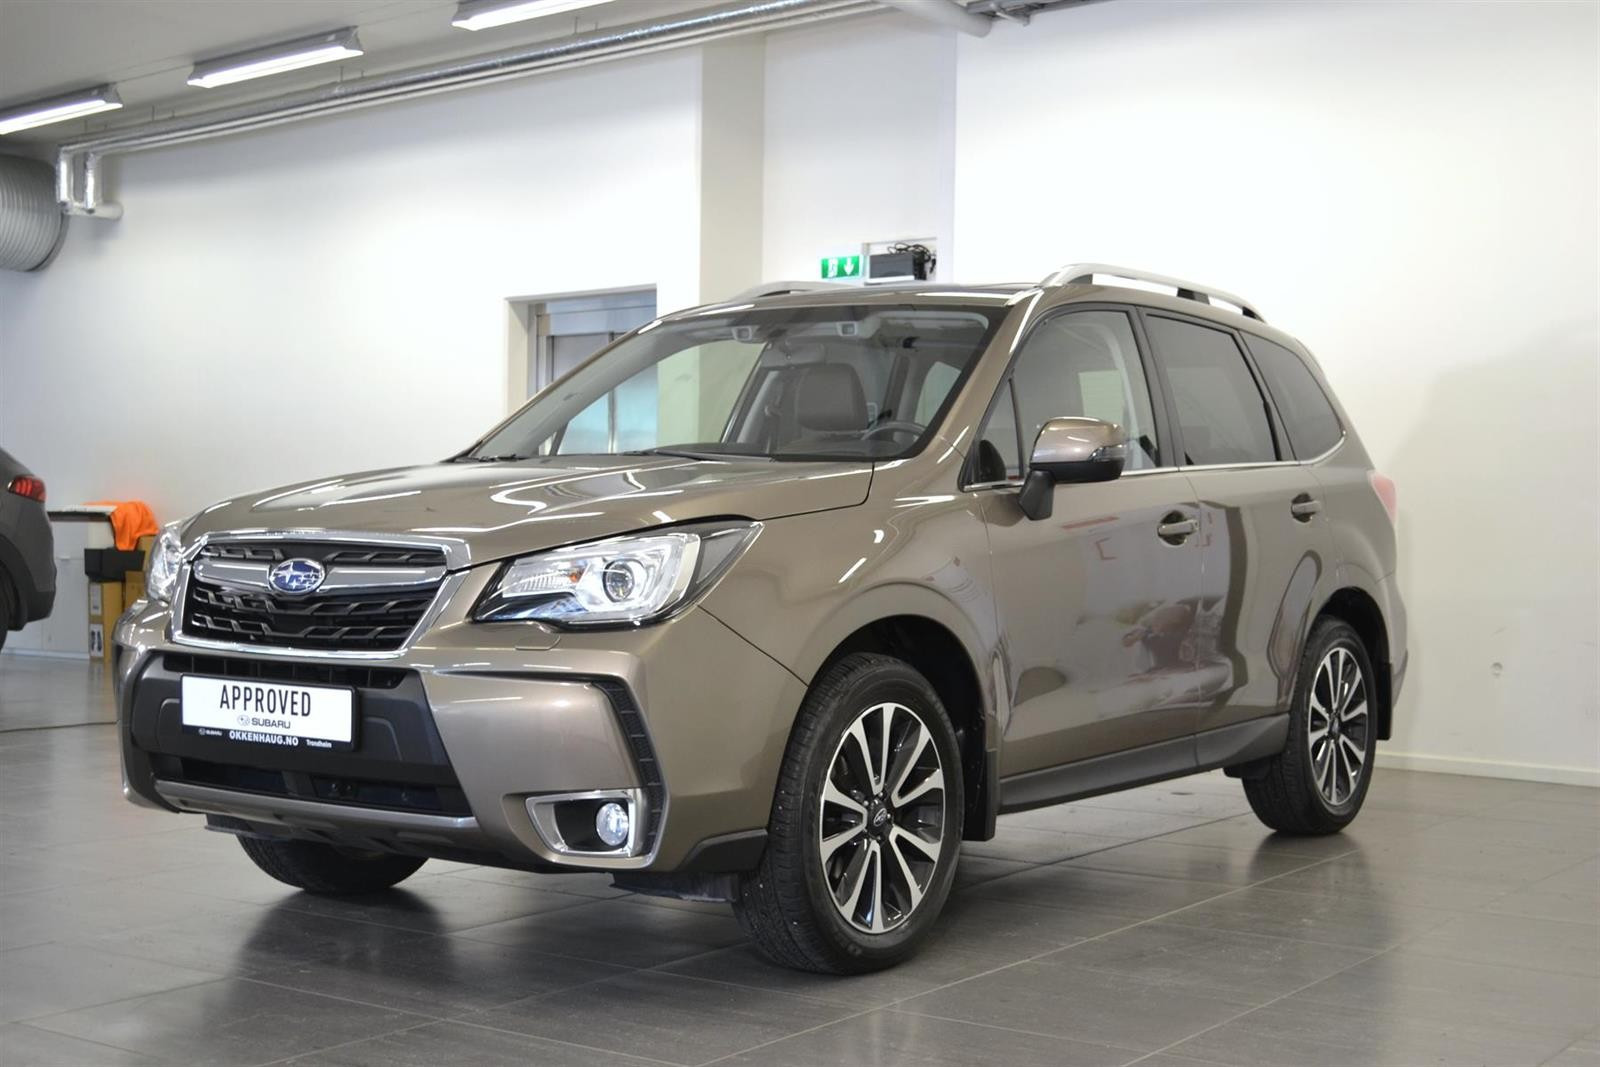 Subaru Forester Slide 2